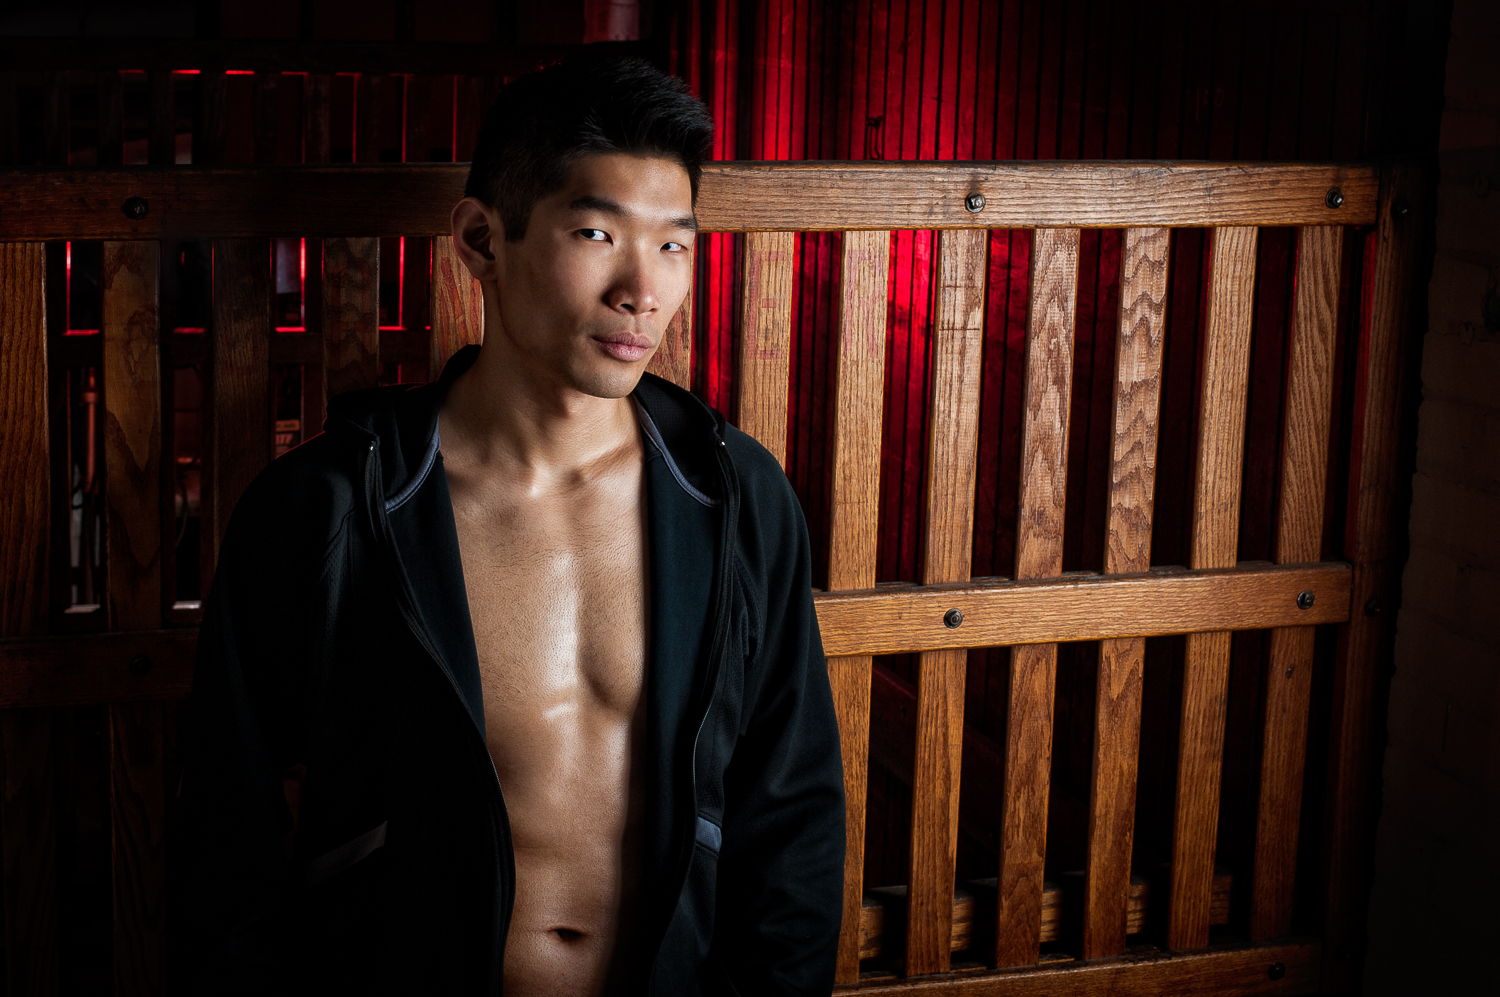 Hamilton Toronto Fitness Model Leo Chan Red Light - Photographer - Marek Michalek.jpg